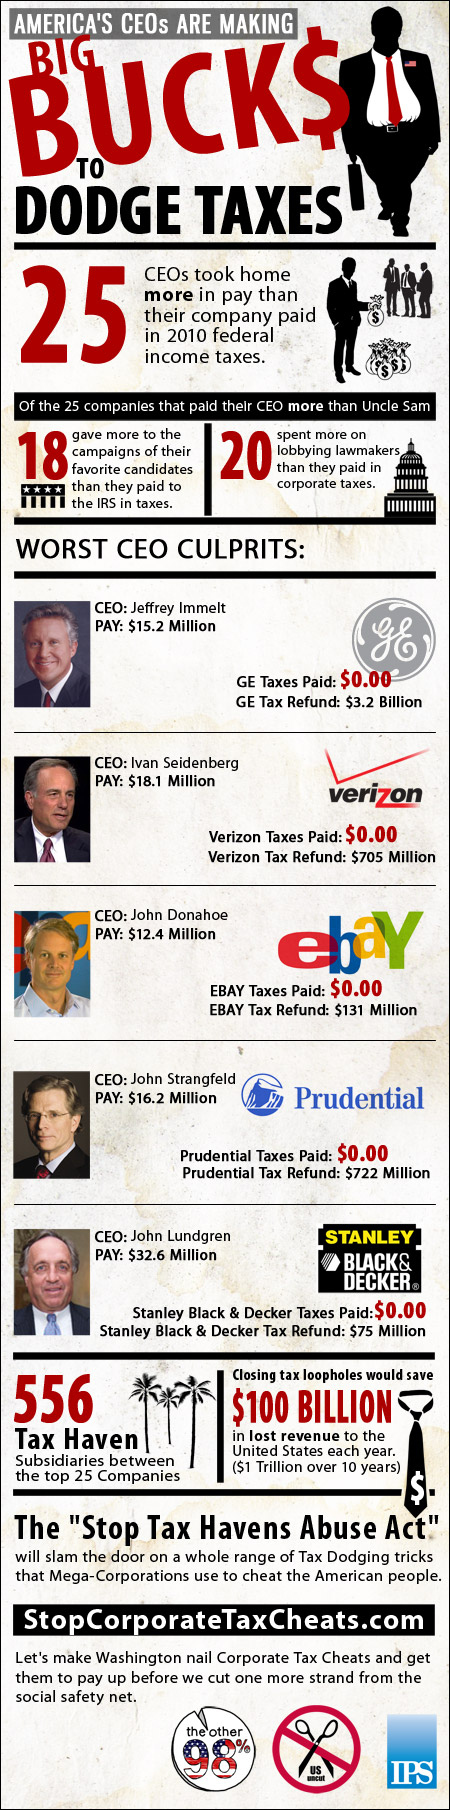 CEOs Make More Money Than Their Companies Pay In Taxes